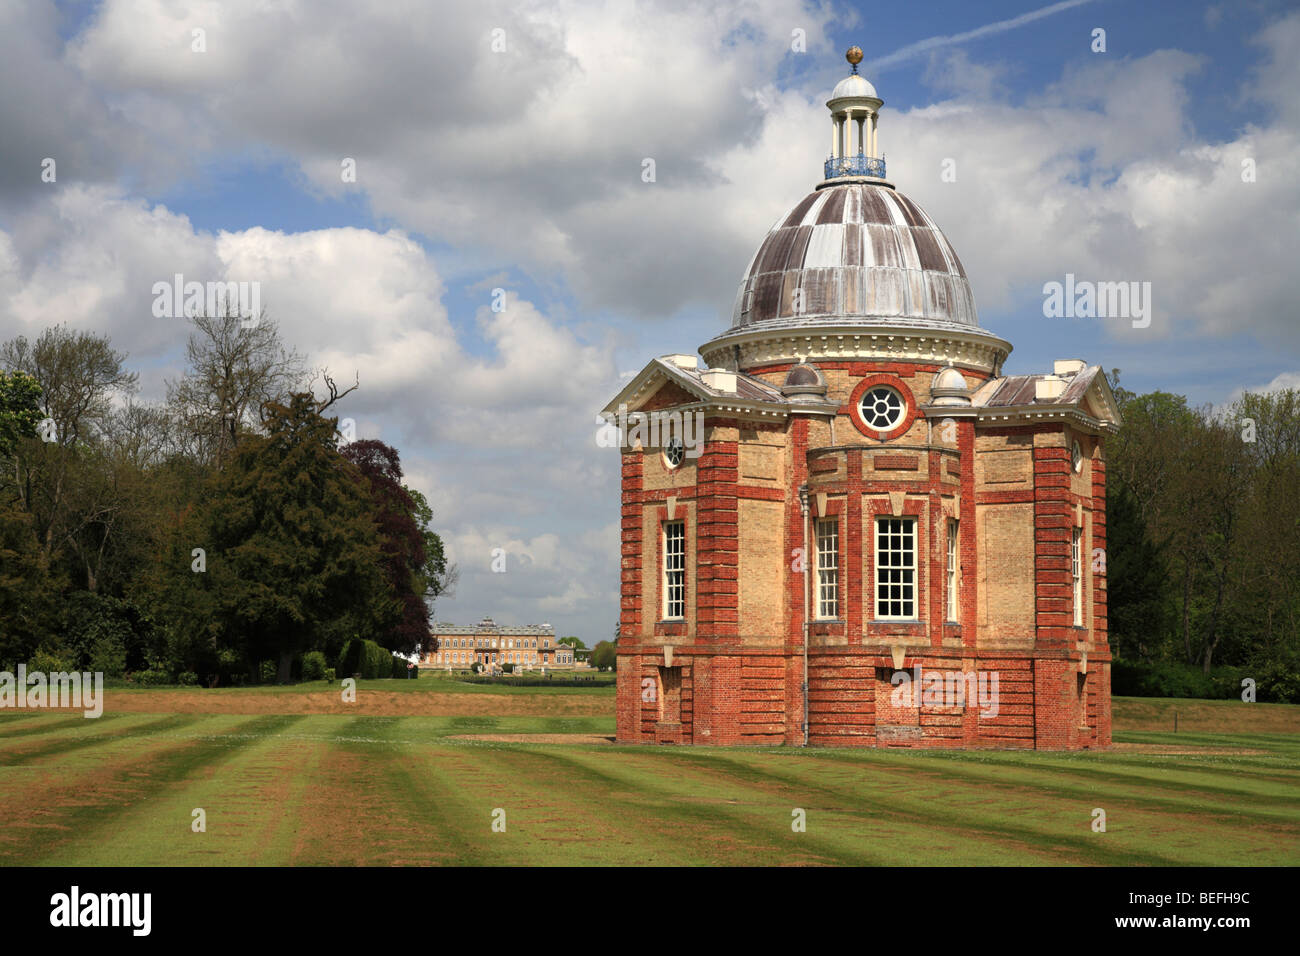 Wrest Park Summer House Stately Home Gardens English Heritage England UK